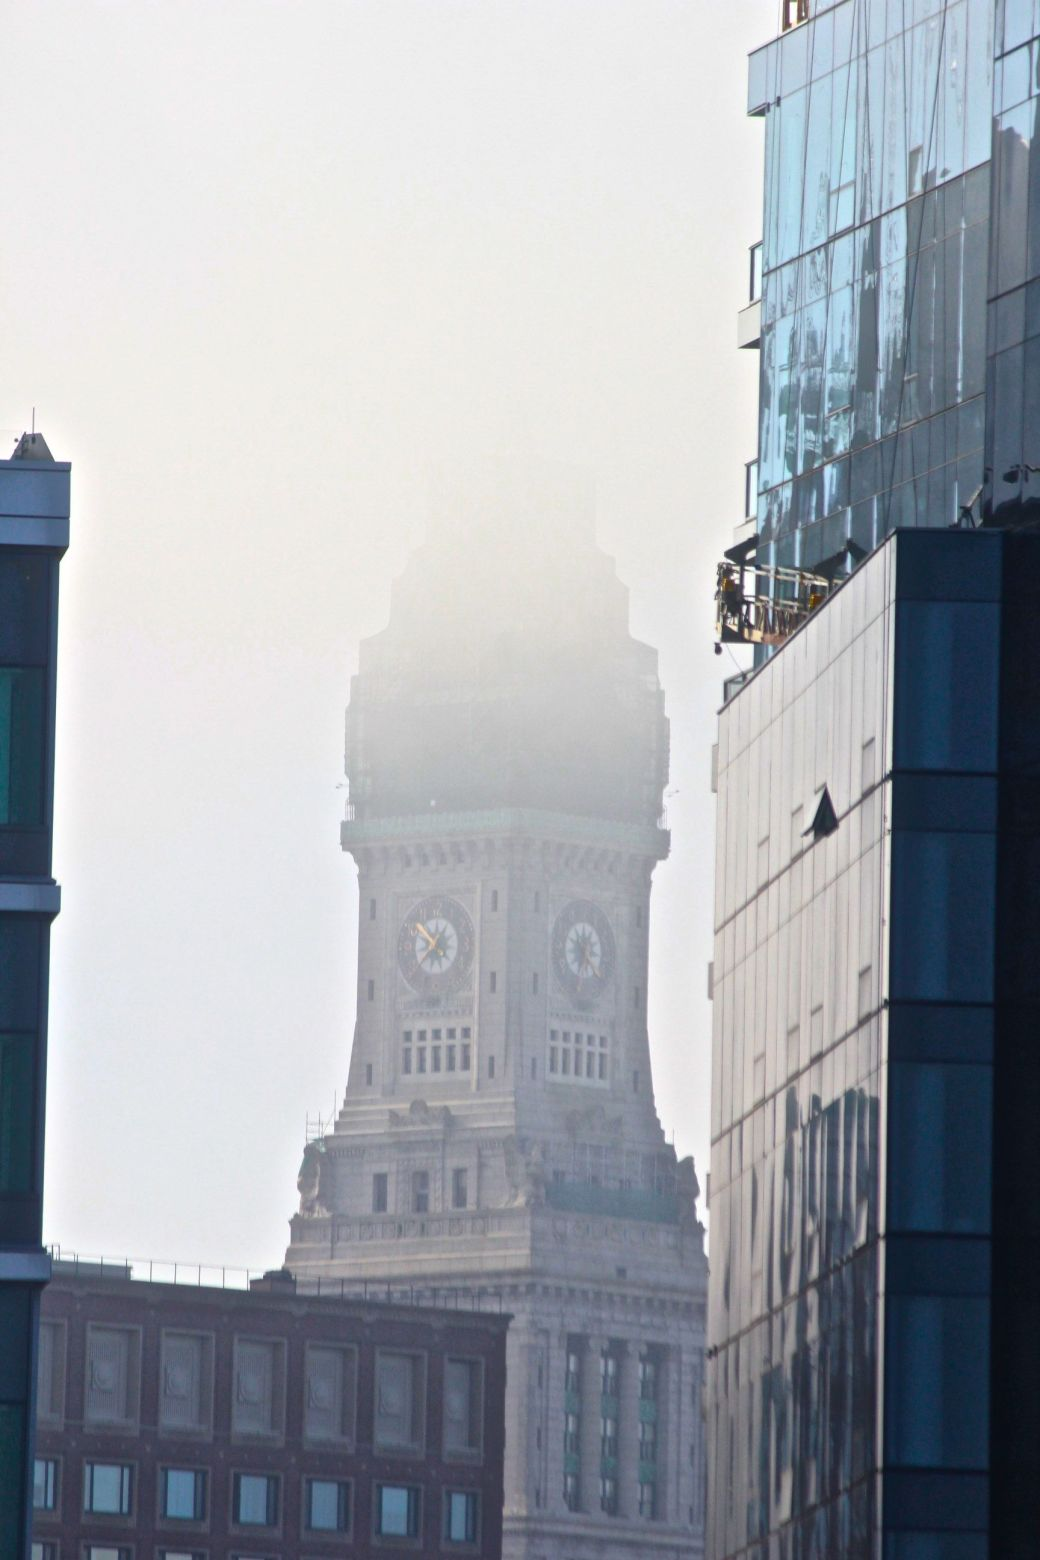 boston seaport district customs house tower fog